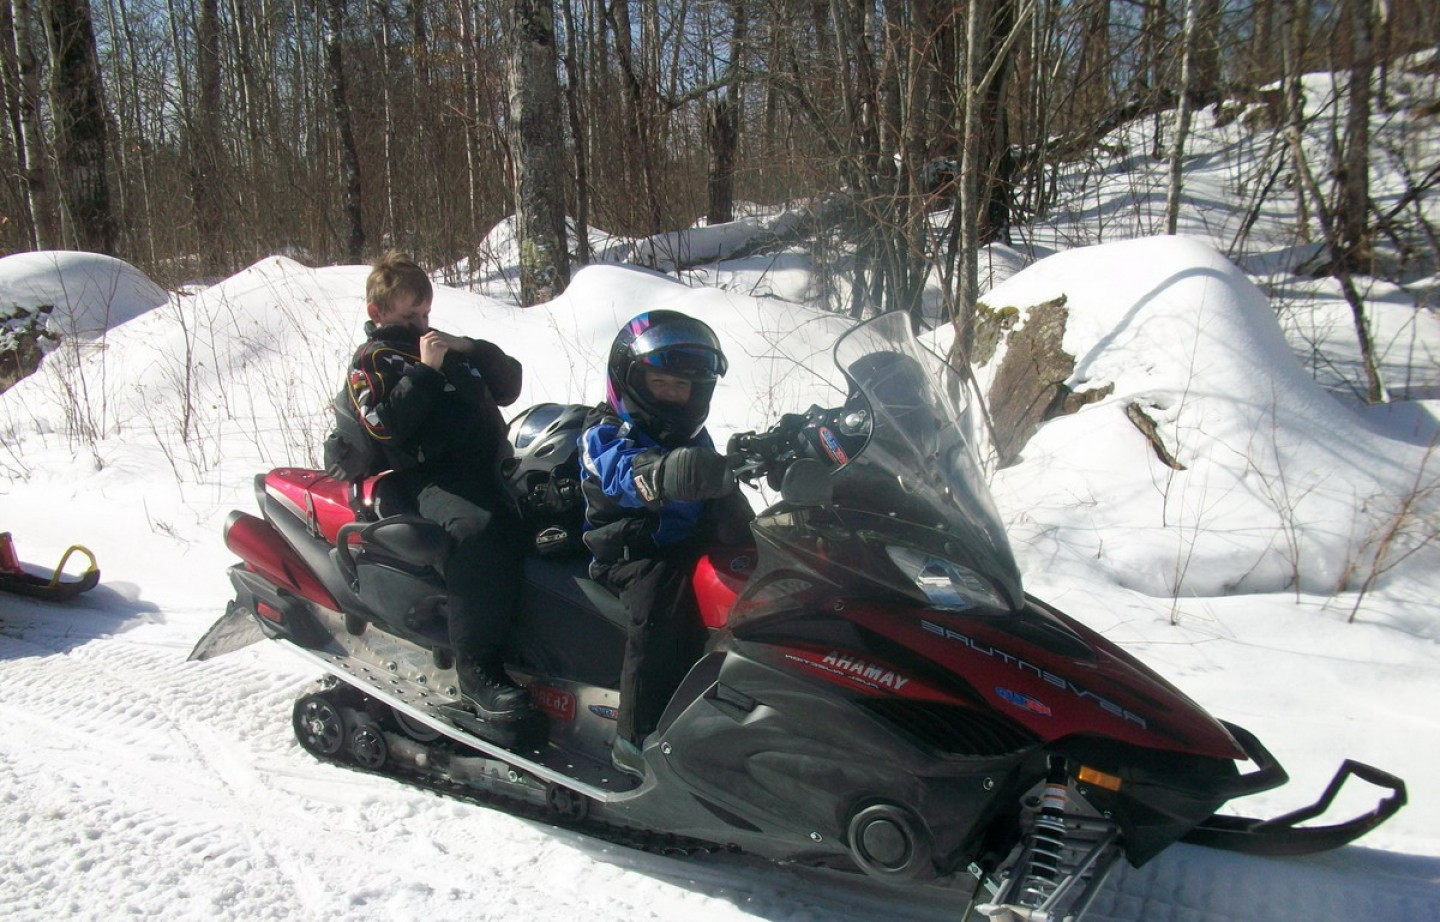 2012 Yamaha Vector Specs: Max Sled Snowmobile Review Yamaha Rs Venture Gt